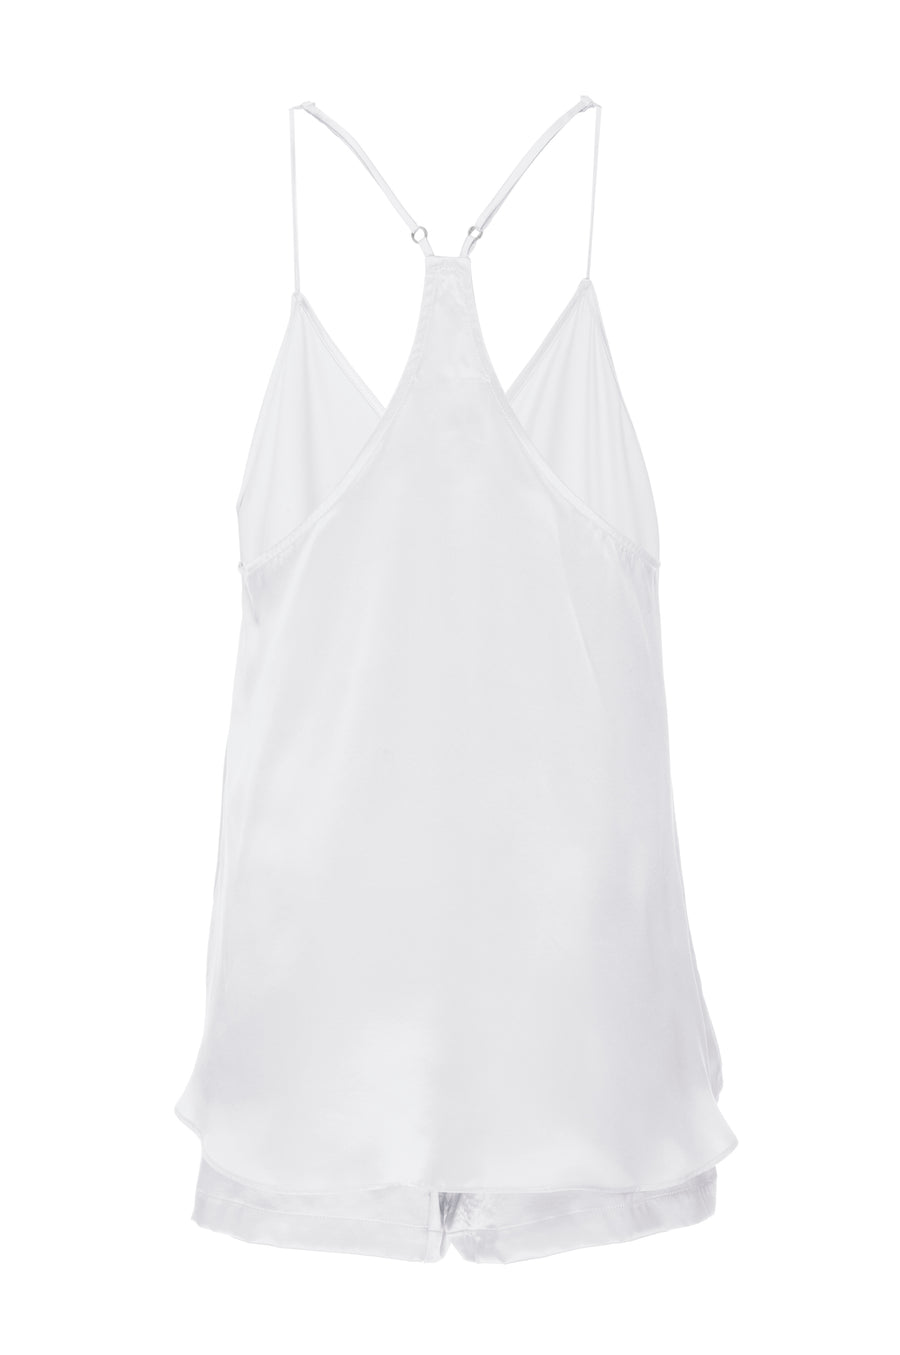 Silk Charmeuse Tank + Short Set: Ivory